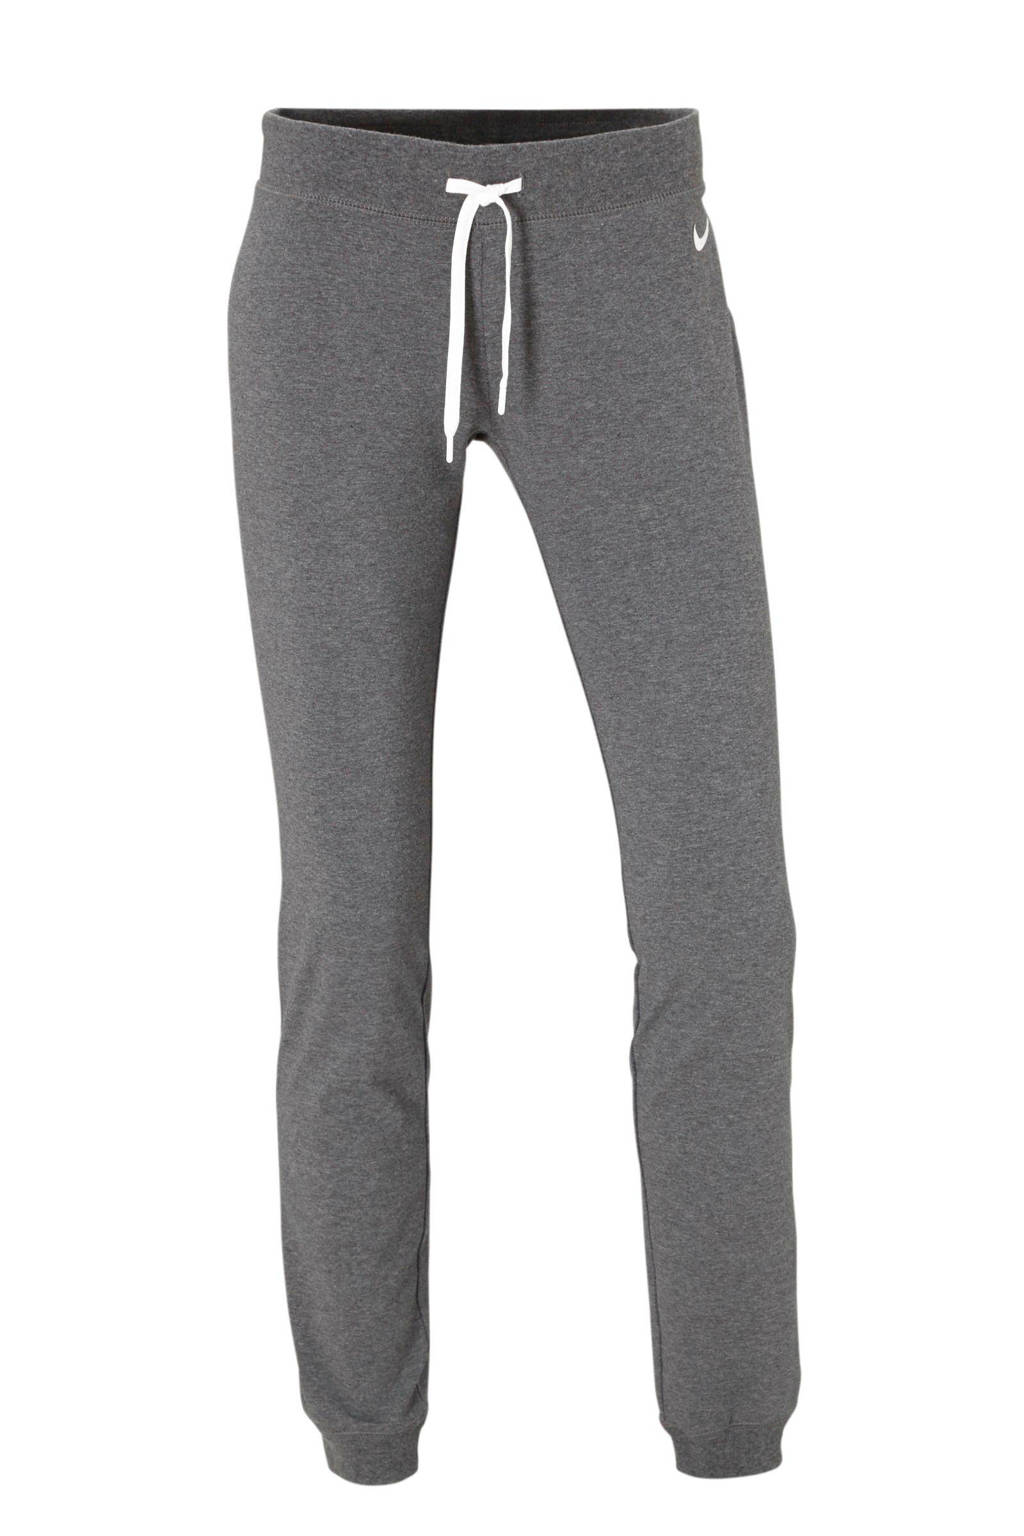 Merk Joggingbroek Dames.Nike Joggingbroek Wehkamp